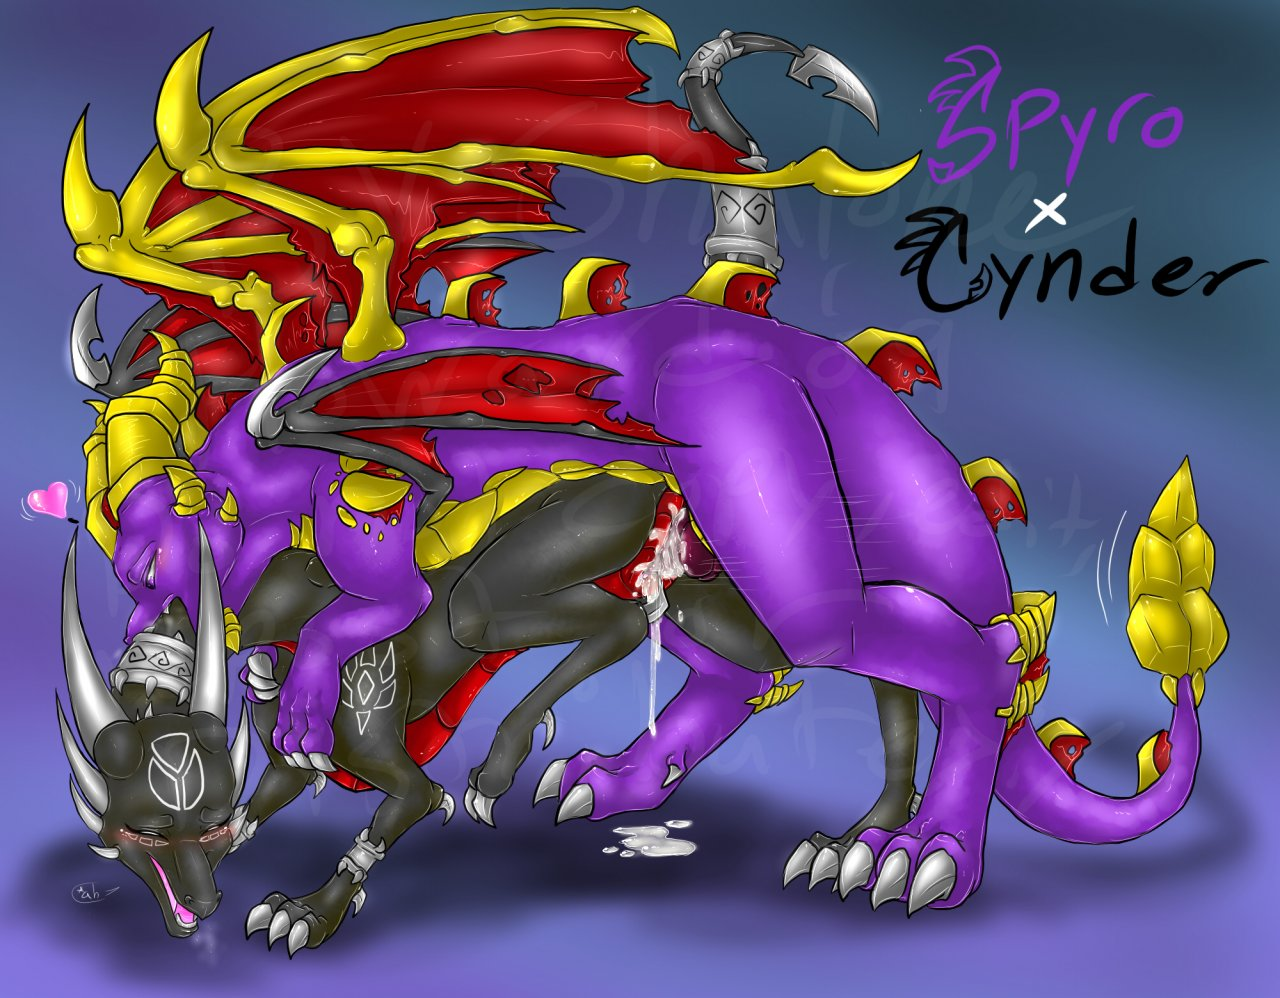 spyro and herpy mating cynder Saints row 4 naked girl